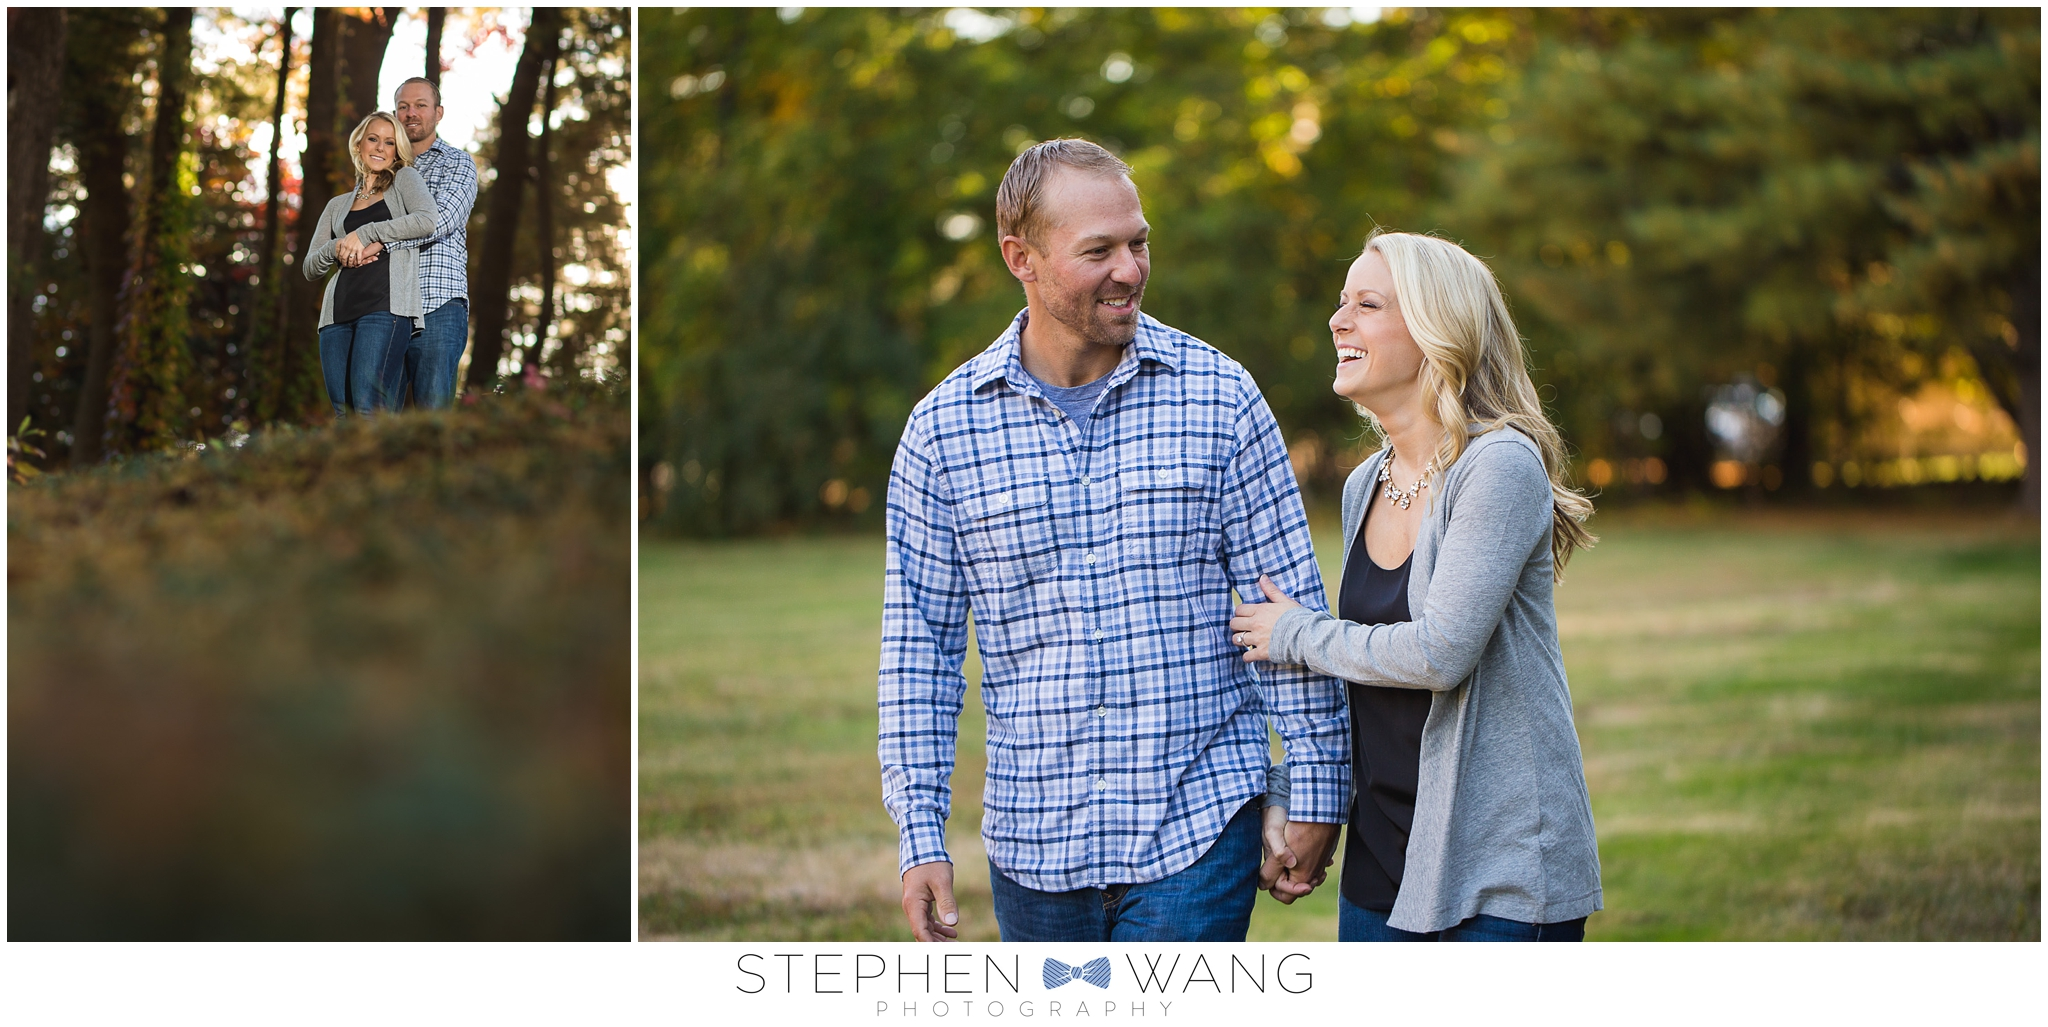 Stephen Wang Photography Connecticut Engagement Session photographer Wadsworth Mansion Park Middletown Autum Fall Foliage CT New Haven-10-23_0006.jpg